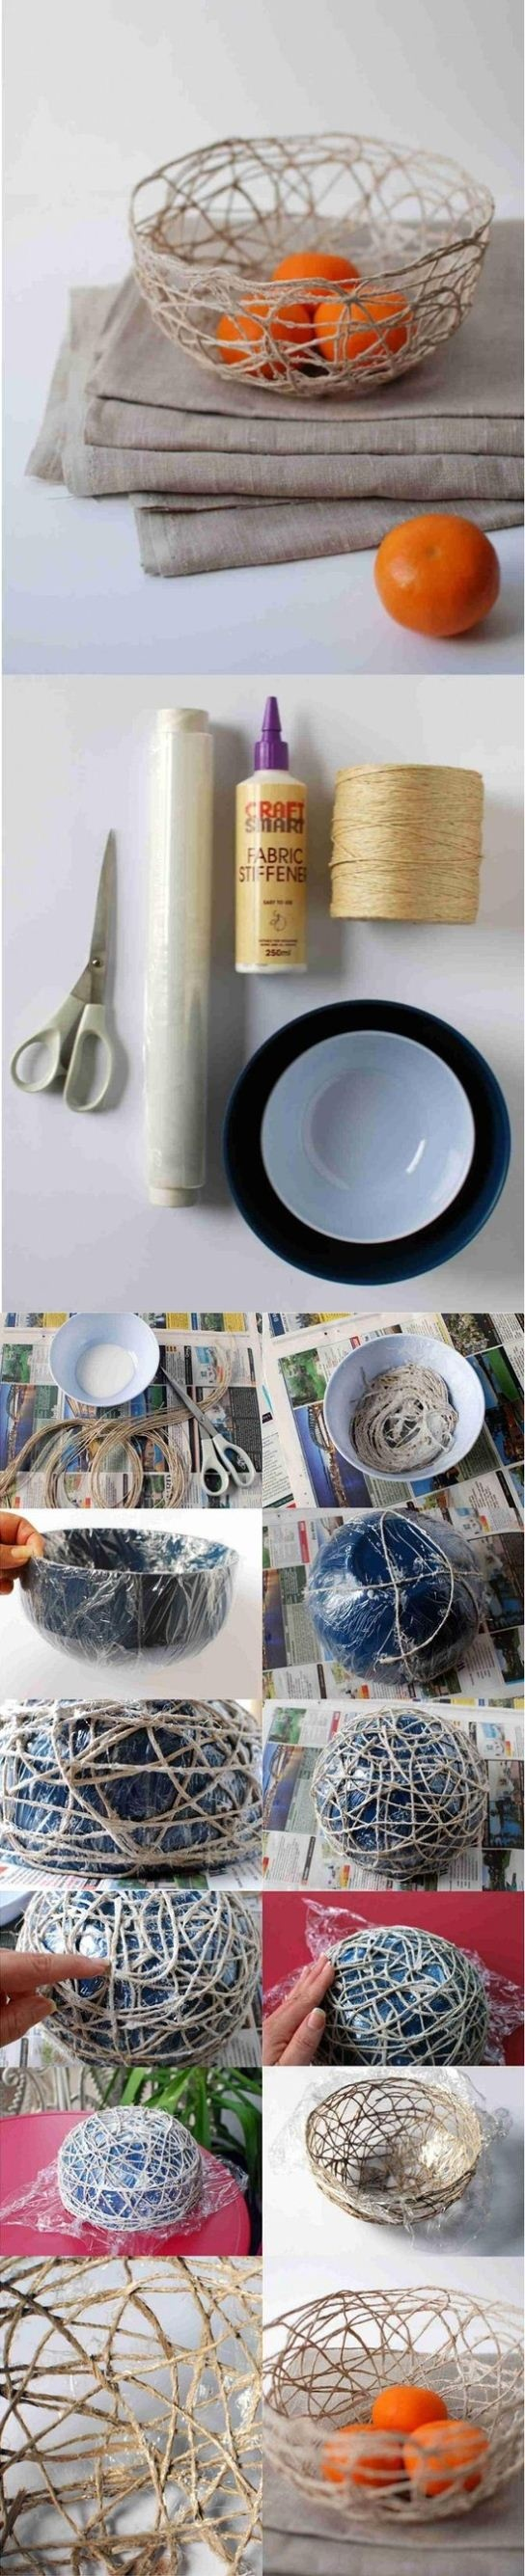 9 unique and useful do it yourself projects for home decor diy ideas for the home decor popular diy upcycle craft projects solutioingenieria Image collections